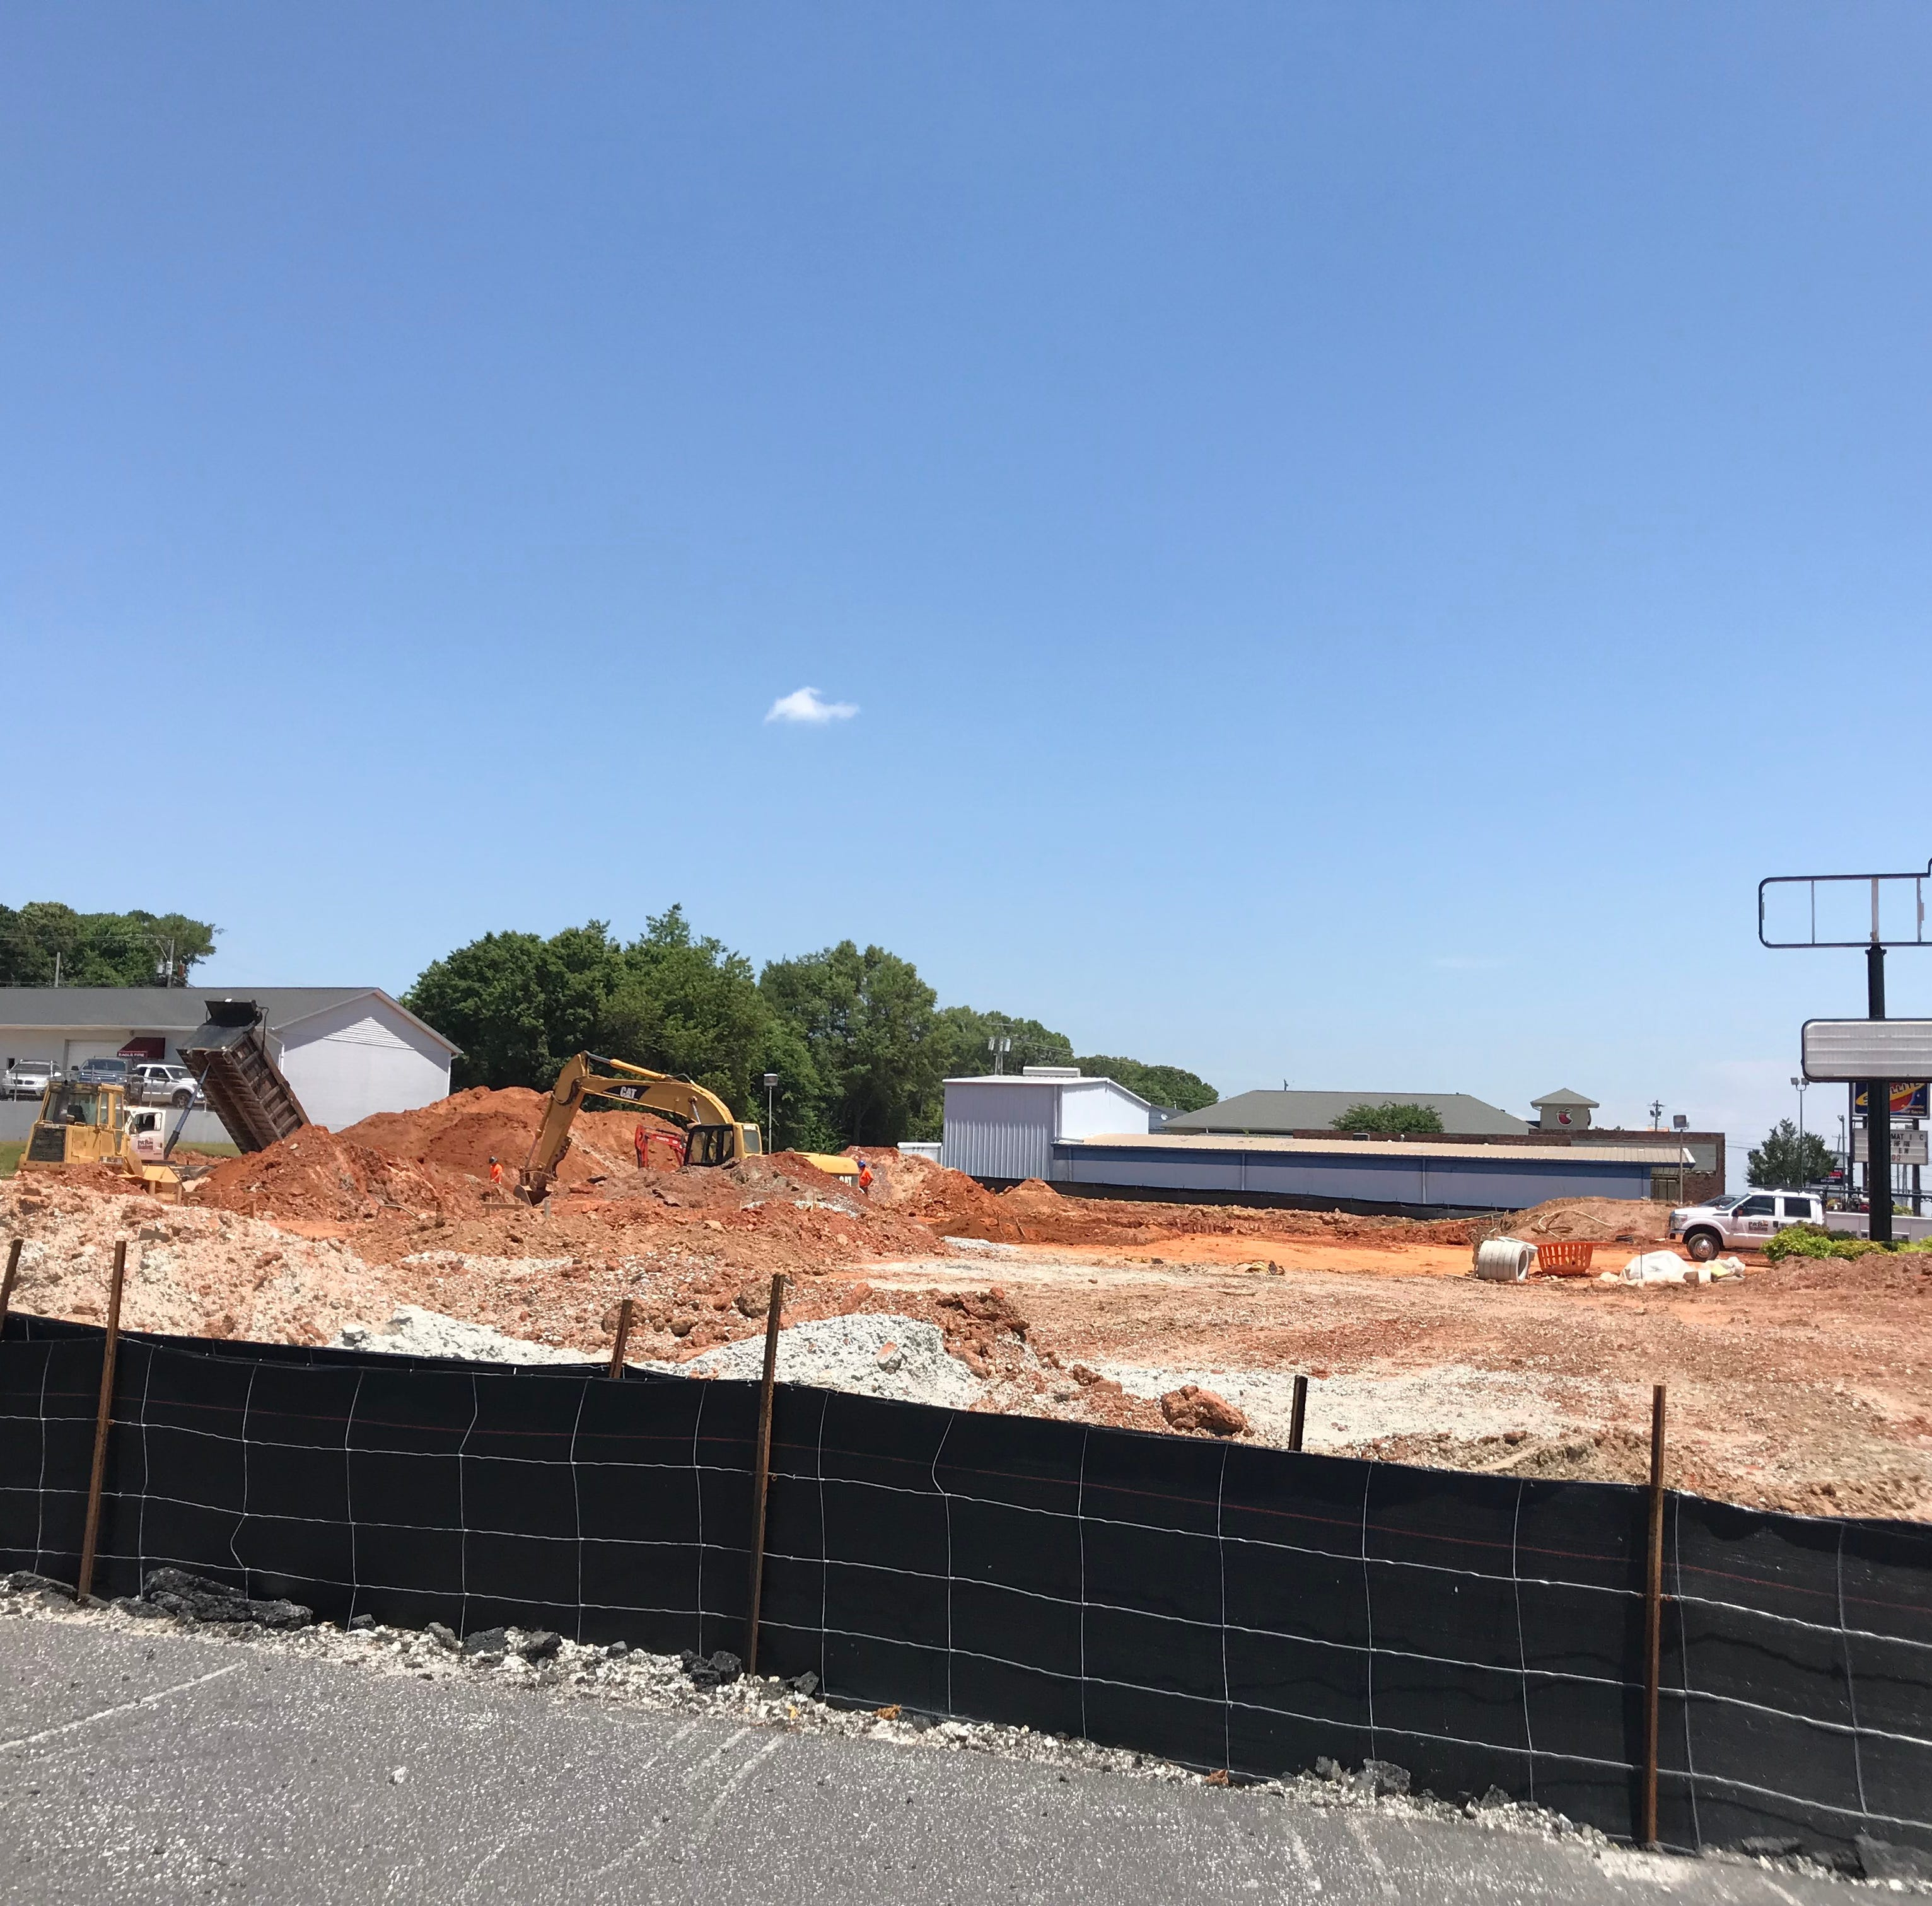 Ask LaFleur: What's being built at the old Hardee's location in Greer?